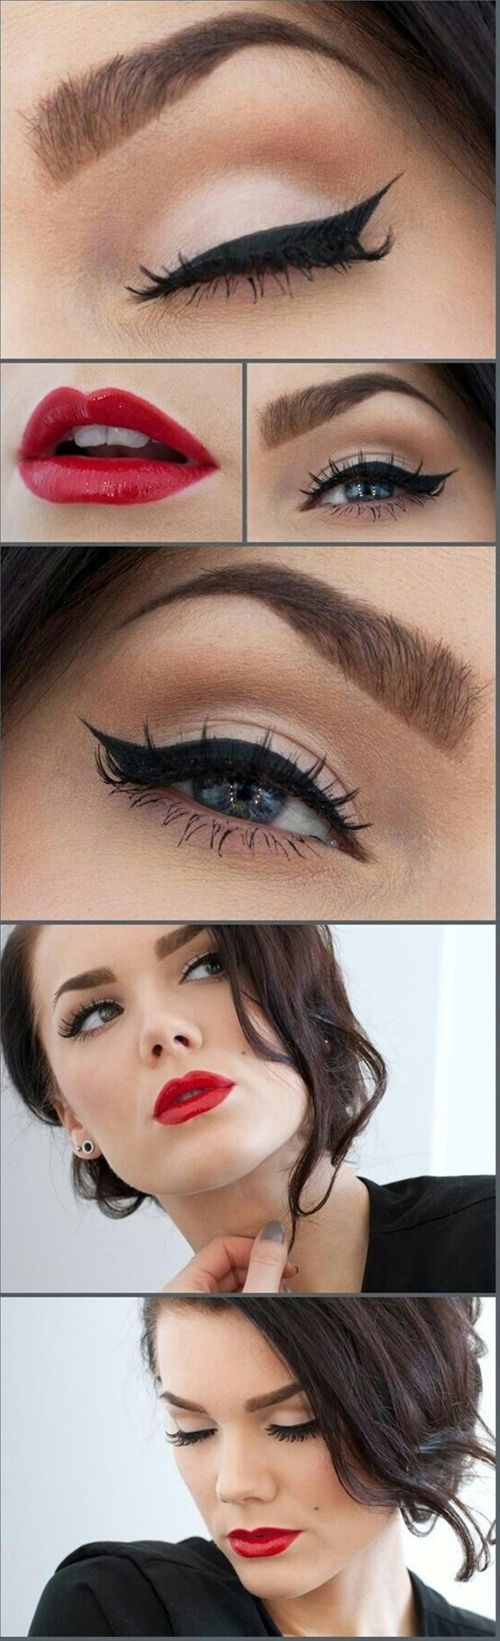 Bridal Makeup: Classic Cat Eyeliner - Click image to find more makeup posts